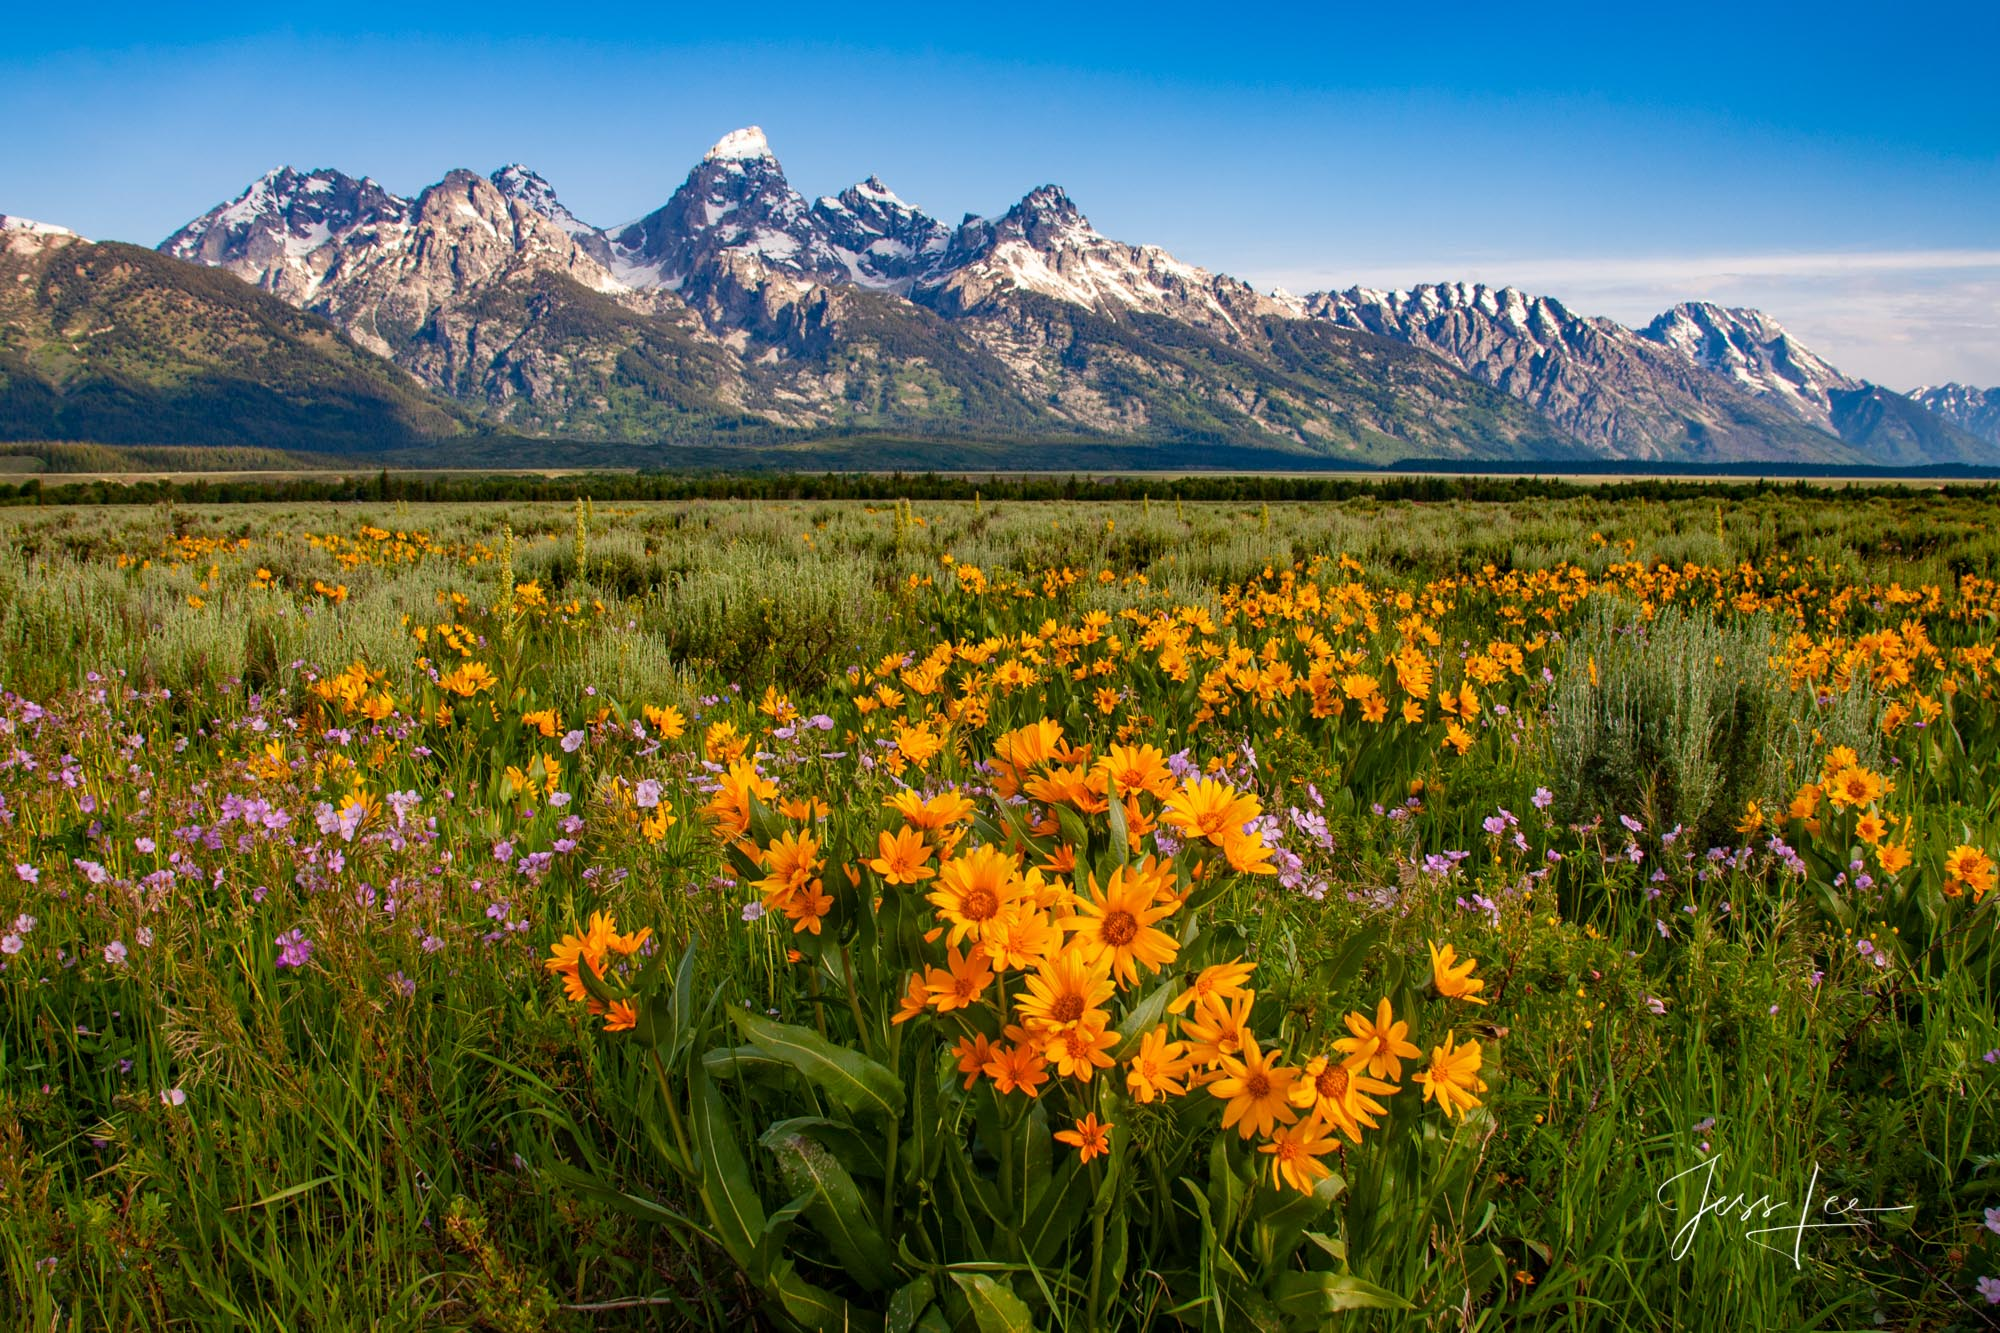 Mountain Photography, photo, Tetons, Jackson Hole, Wyoming, spring, flowers, large format, quality, museum-quality, fine art, print, , jess lee, artist, western, cowboy, photographer, limited edition,, photo